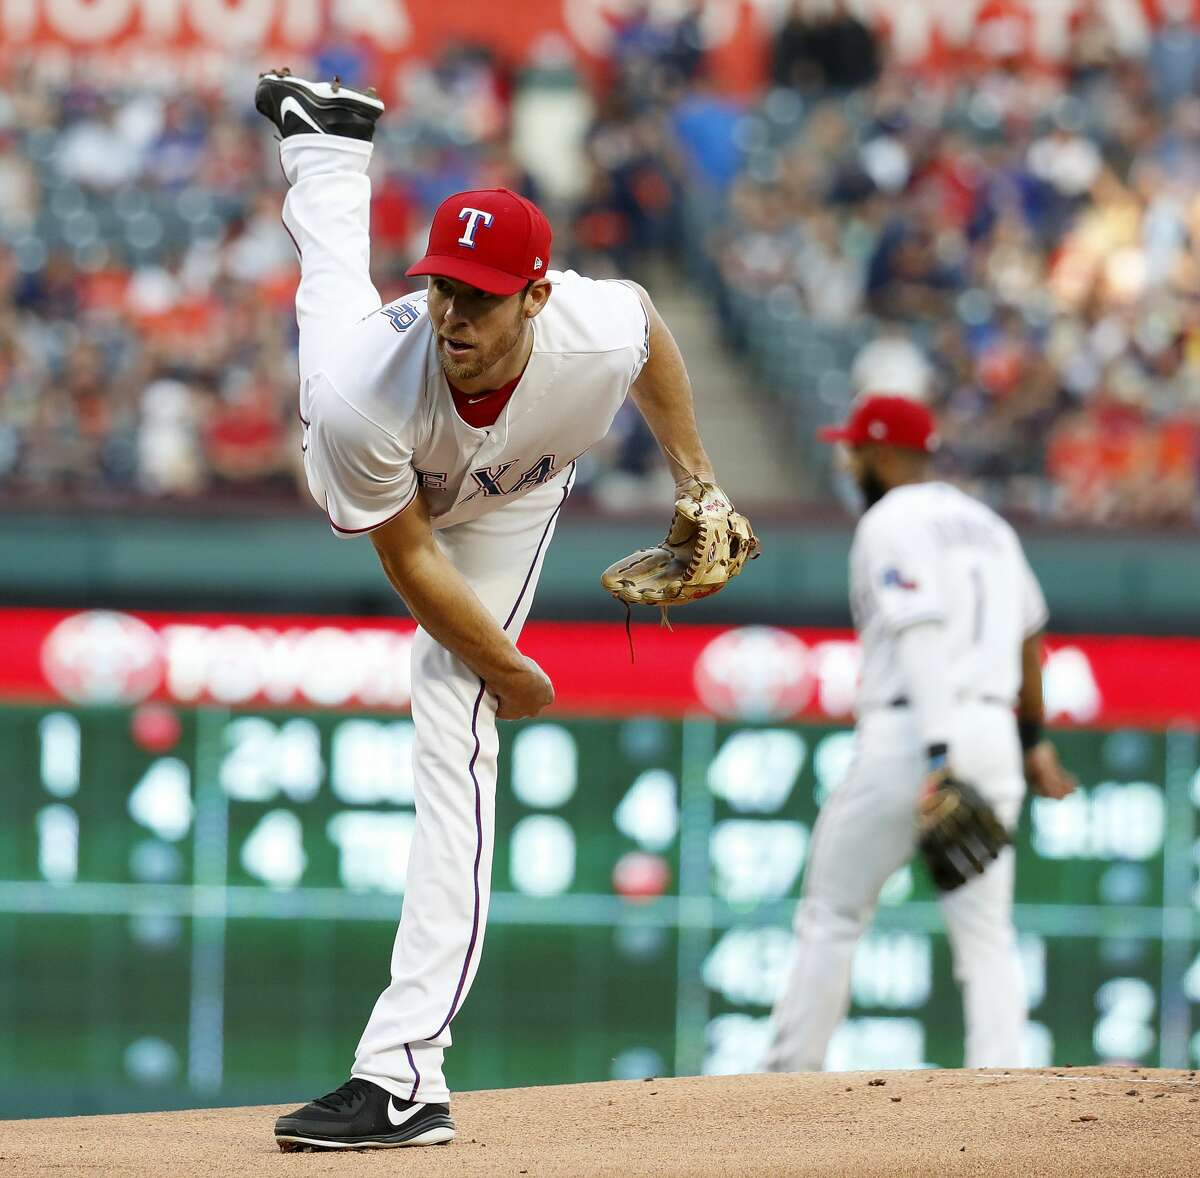 March 30: Rangers 5, Astros 1 Record: 1-1 Houston Chronicle's Player of the Game Doug Fister W/ 5 IP/ 4 hits/ 1 ER/ 3 Ks Earned the win against his former team and delivered the Astros their first loss of the season.